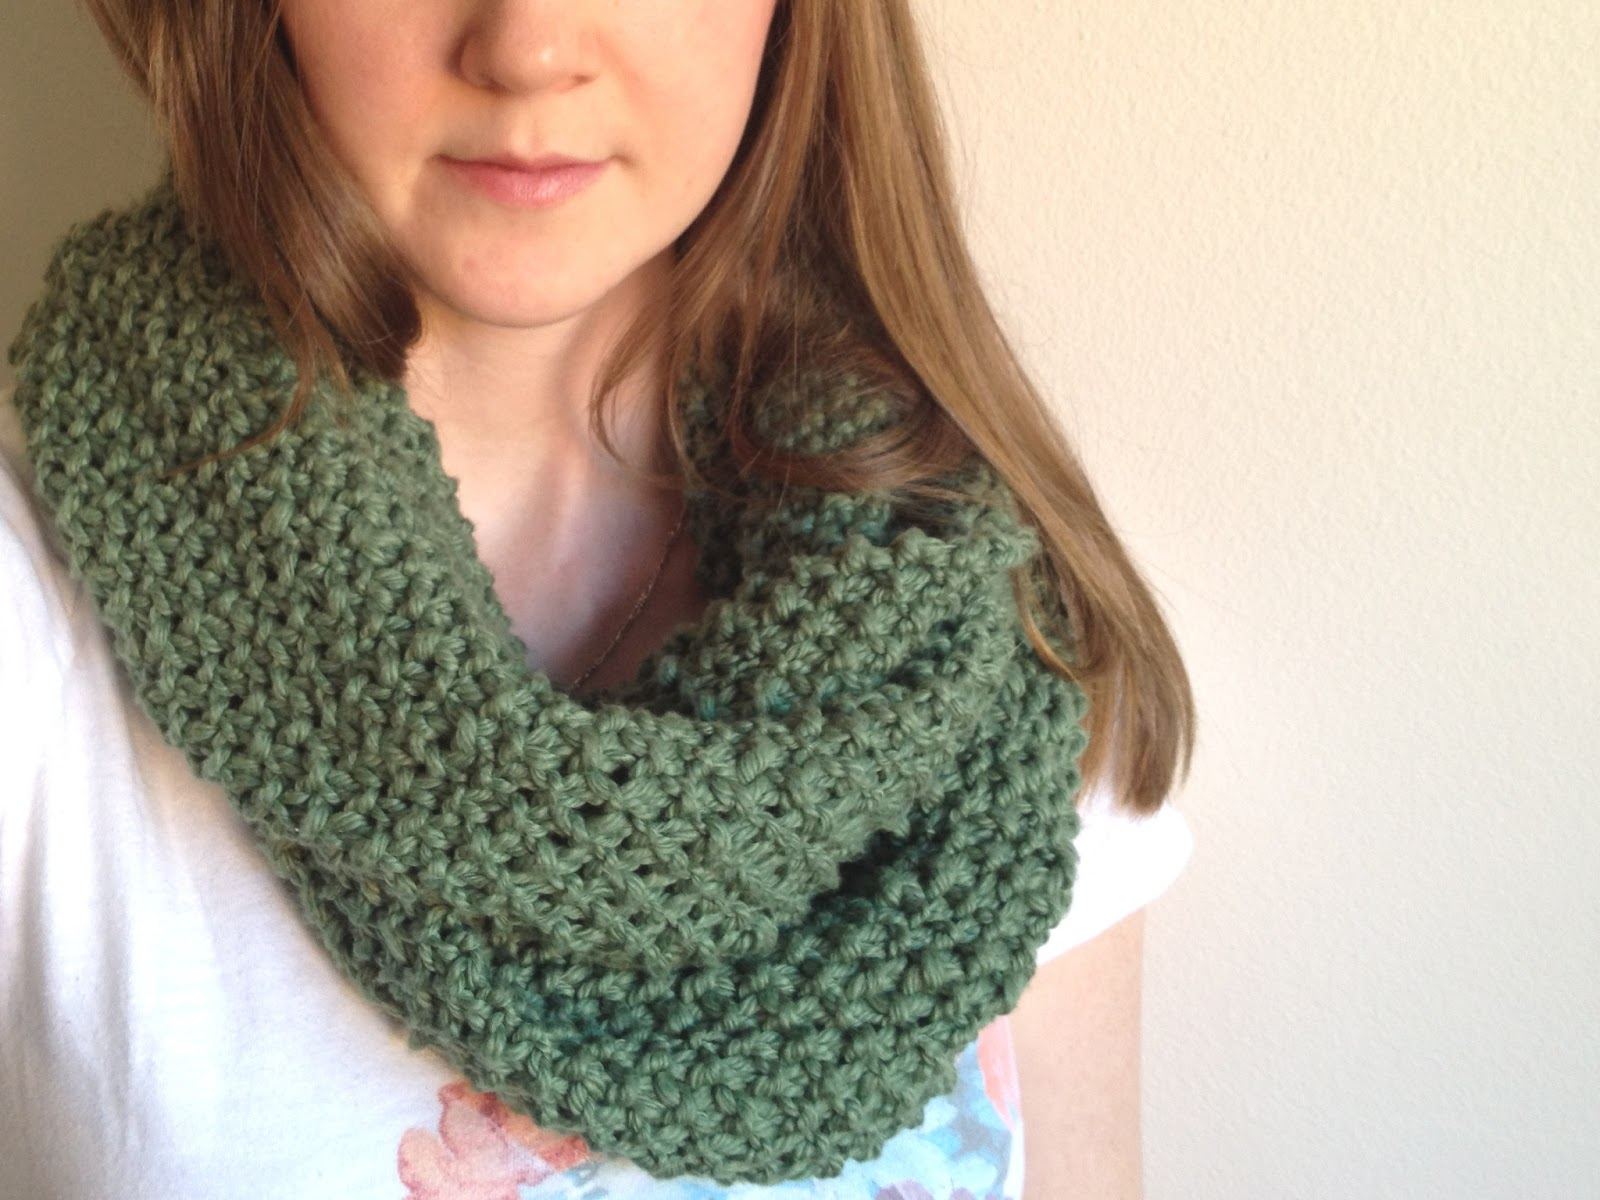 Scarf Patterns Knitting Beginner Tinselmint Free Infinity Scarf Pattern For Beginners